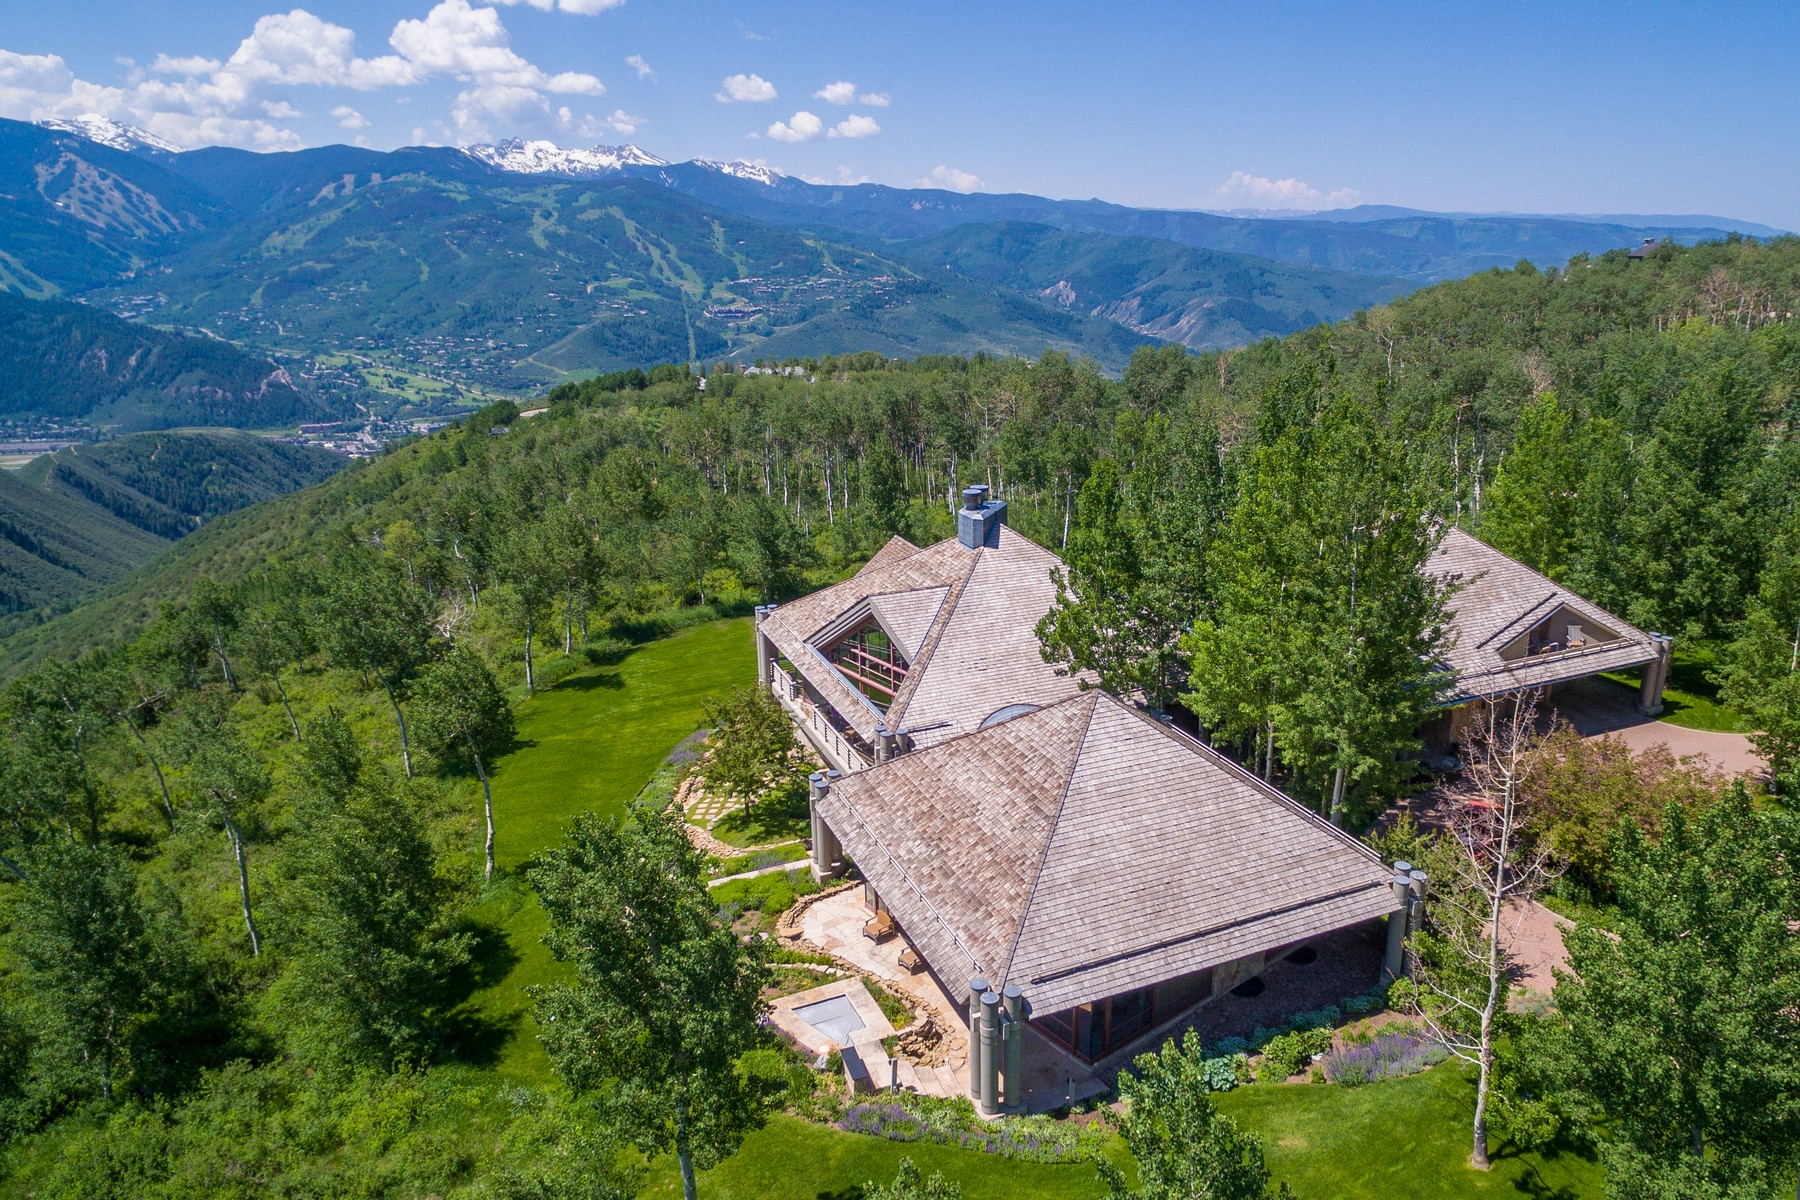 Casa Unifamiliar por un Venta en 56 Rose Crown Beaver Creek, Colorado 81620 Estados Unidos